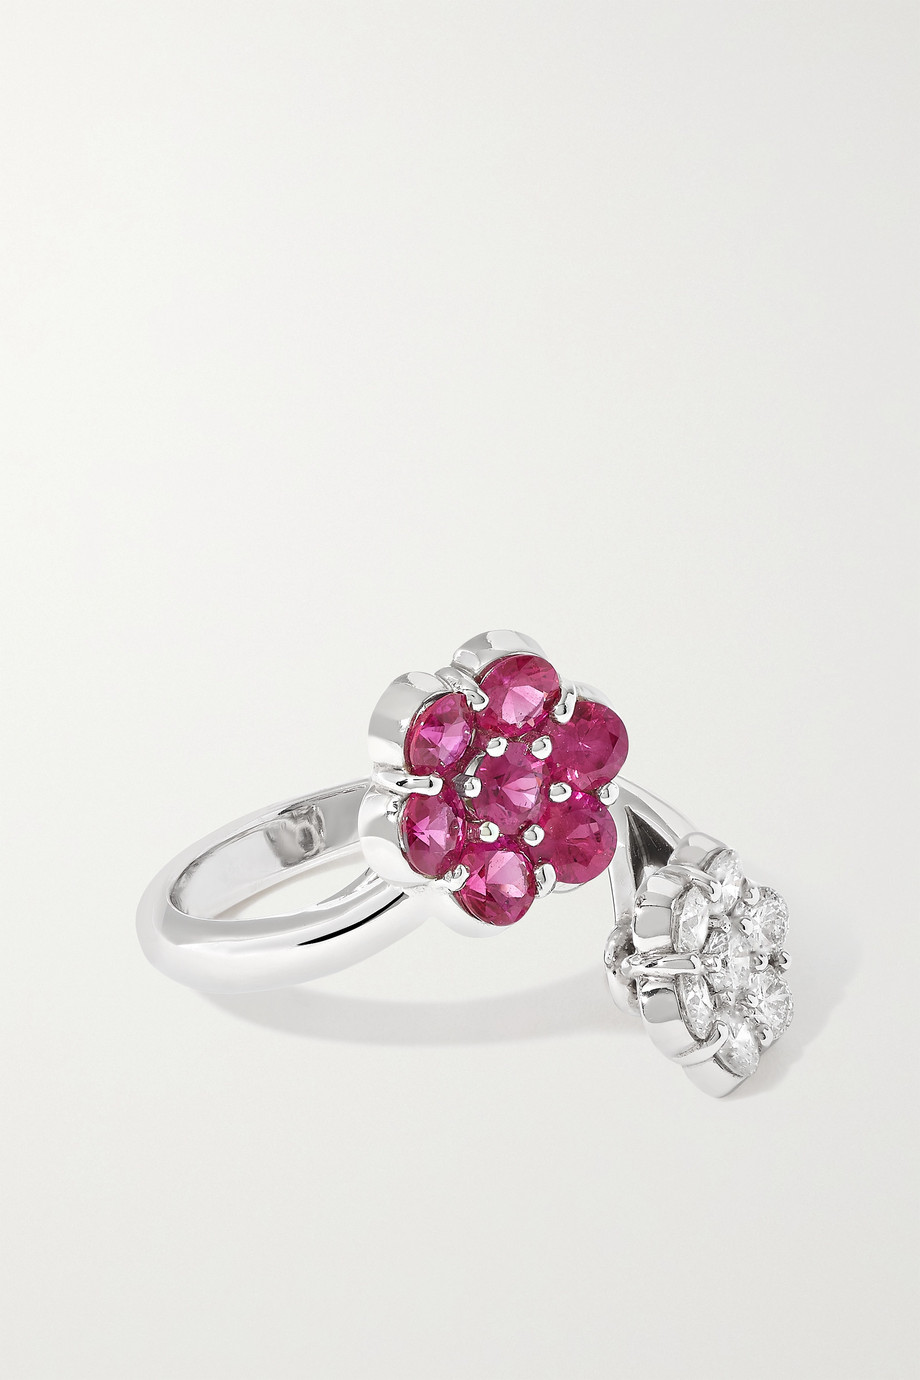 BAYCO Platinum, ruby and diamond ring